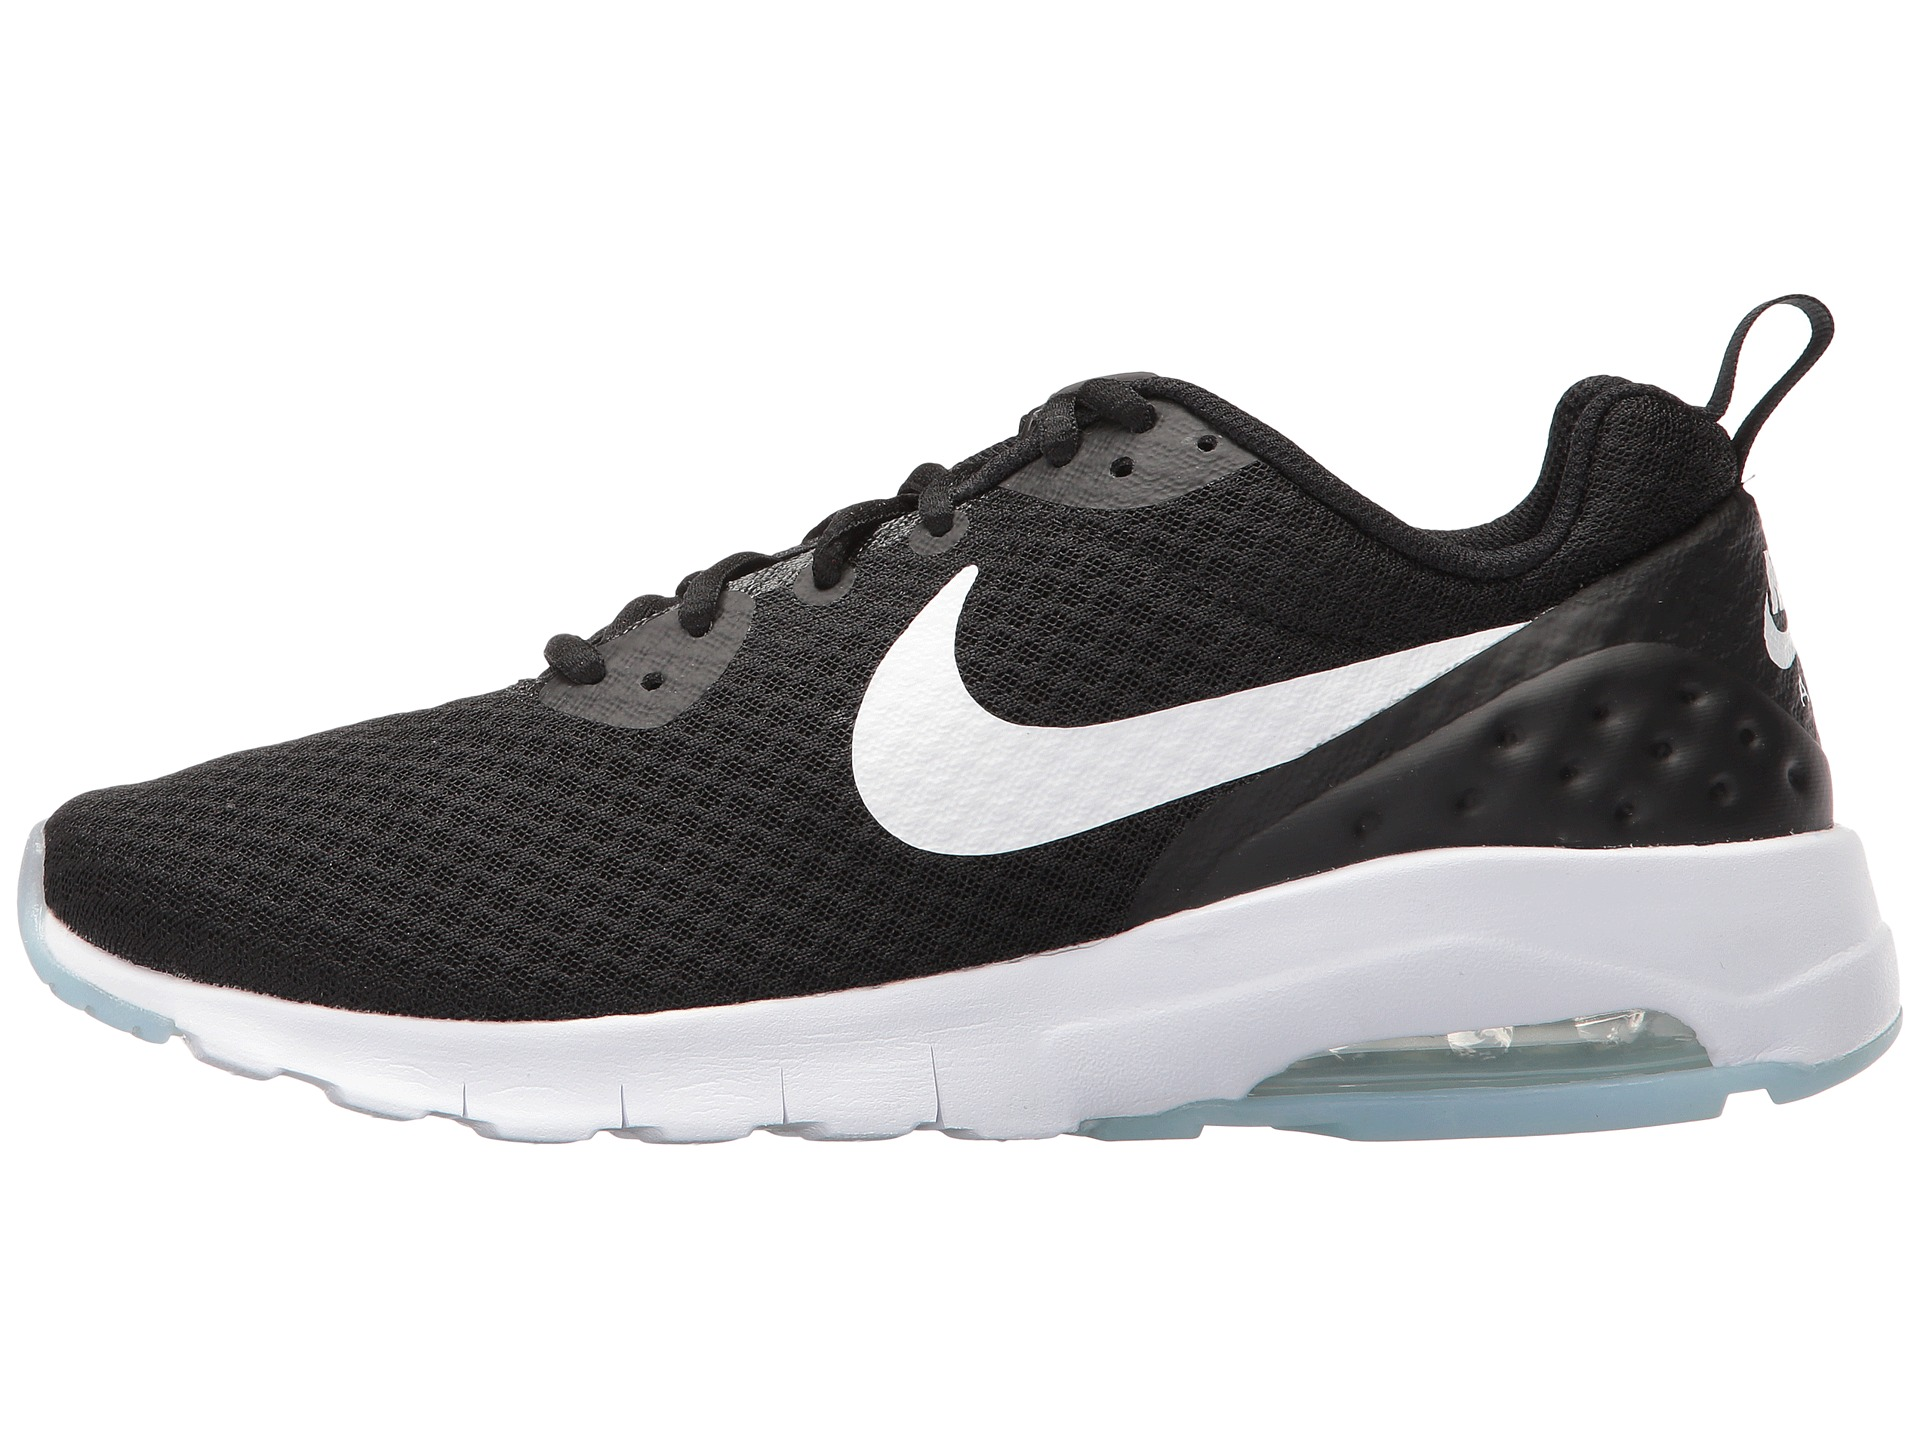 separation shoes 35e2f 67529 Nike Air Max Zappos